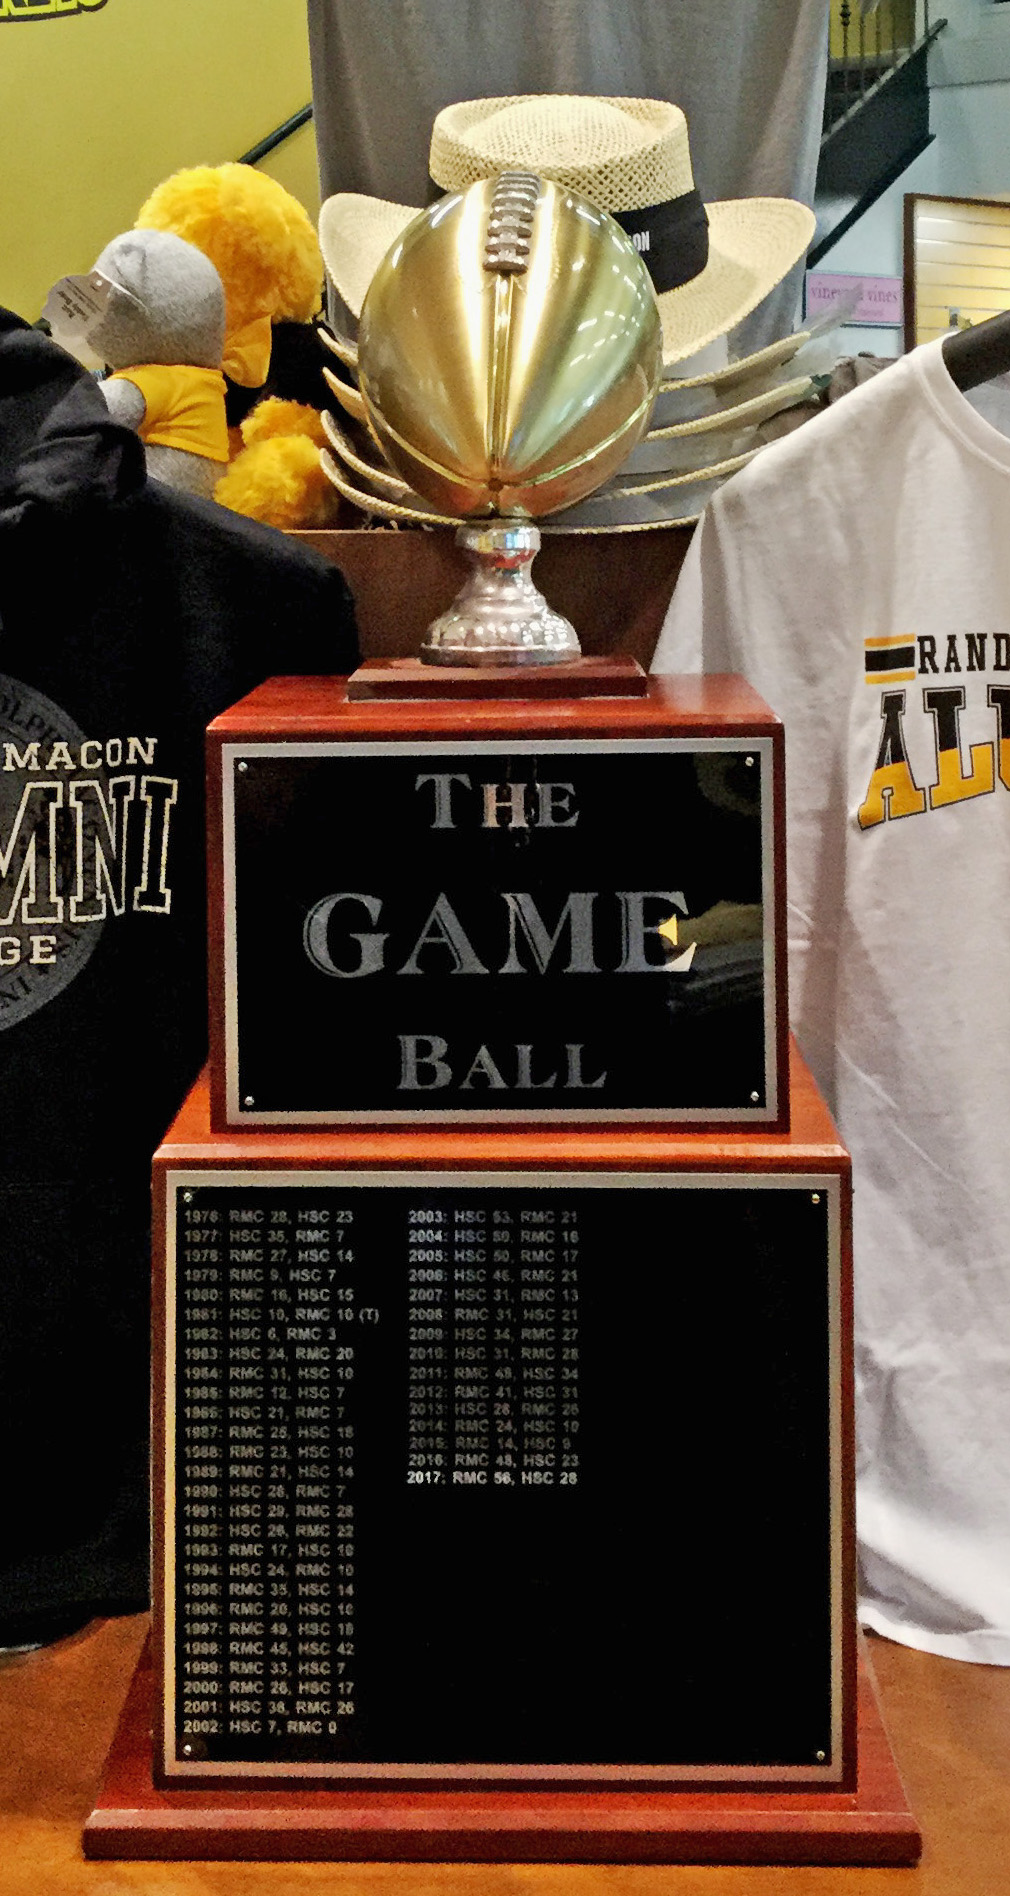 The Game trophy